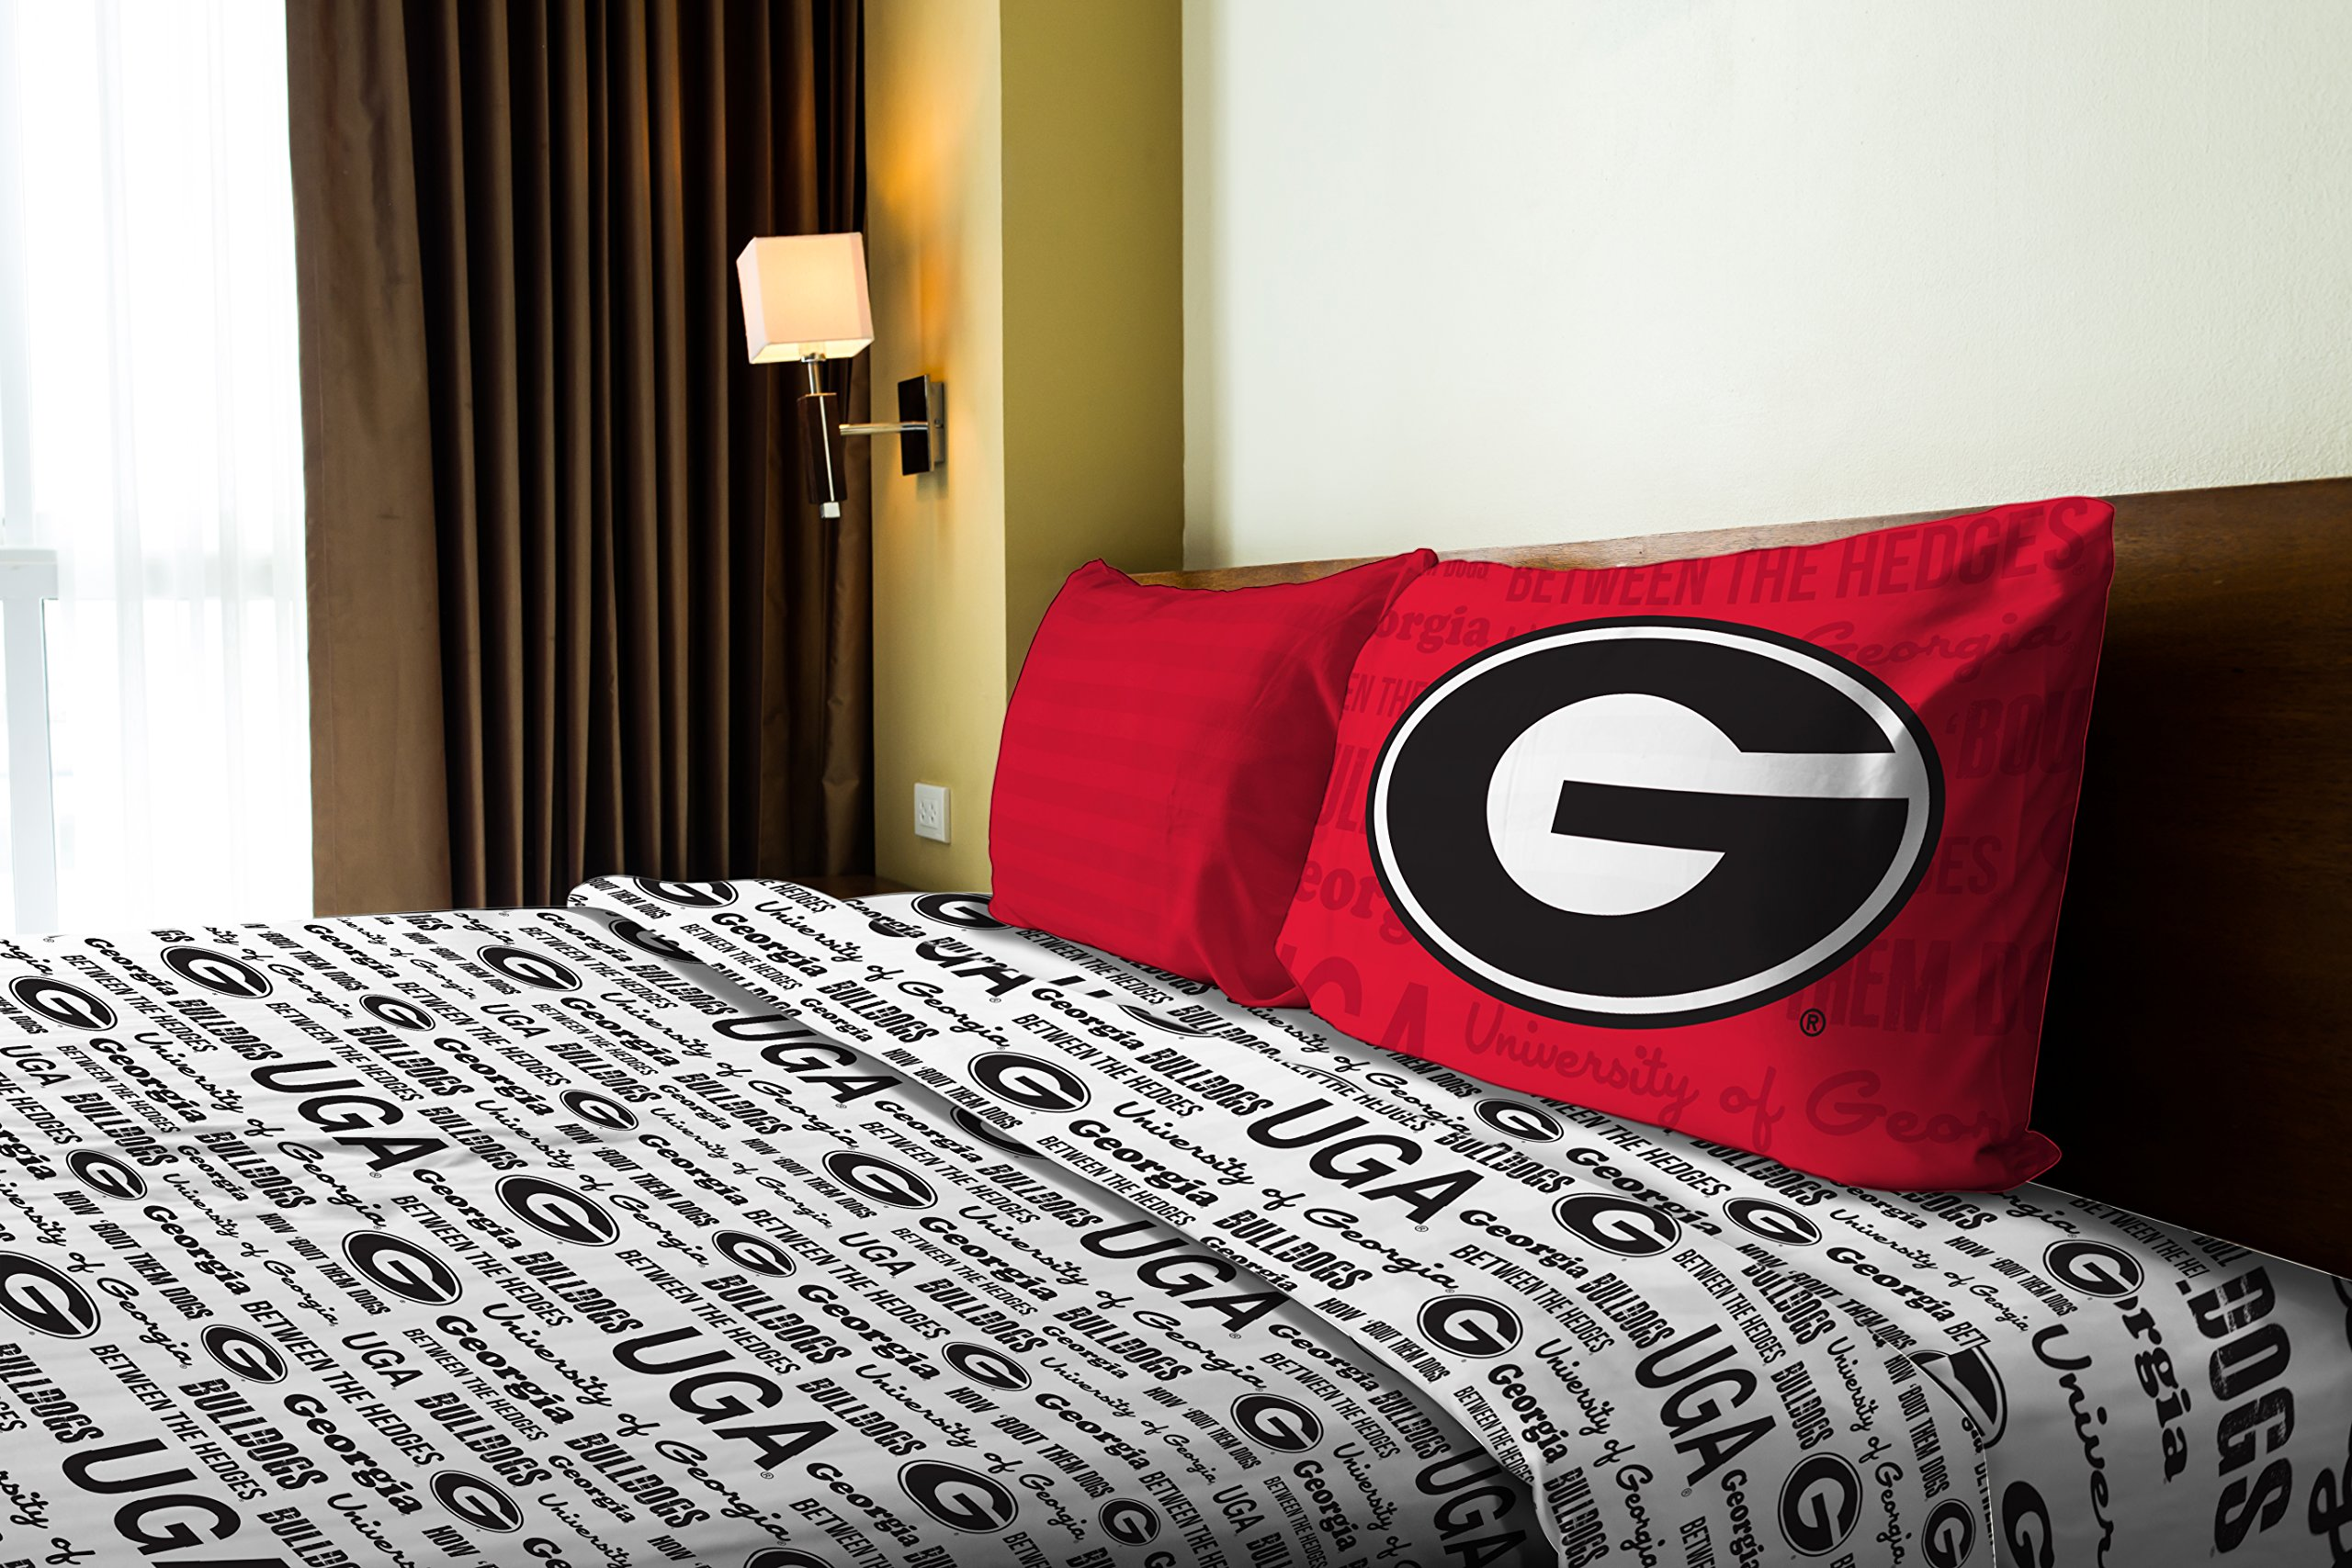 Georgia OFFICIAL Collegiate, Bedding, Anthem Twin Sheet Set (1 Flat 66 x 96, 1 Fitted 39 x 75 + 12 pocket, and 1 Pillowcase 20 x 30)